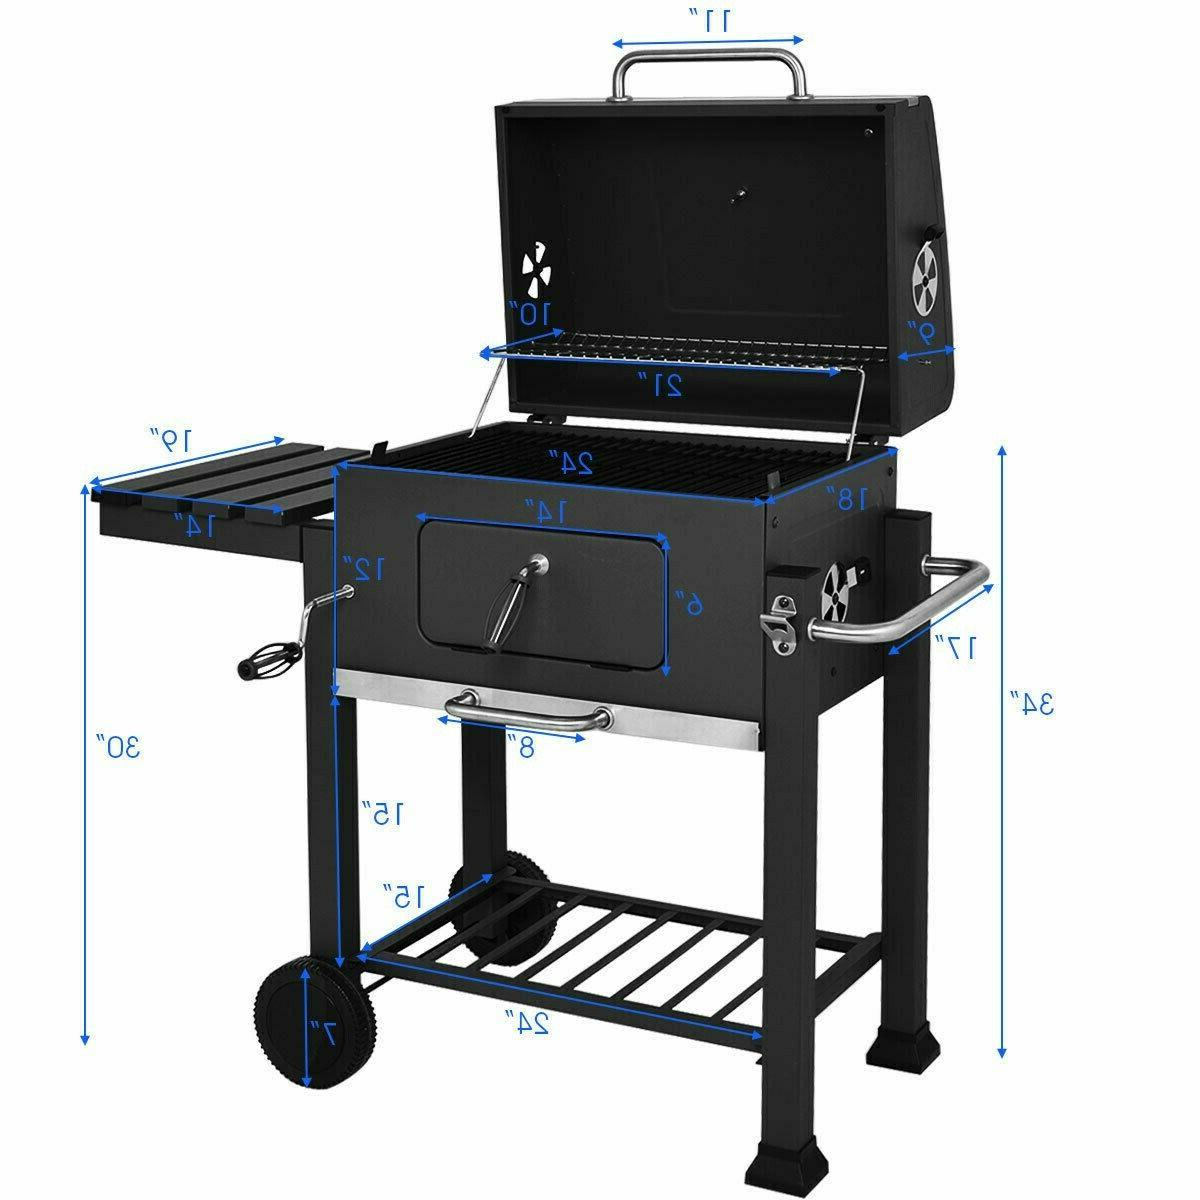 Costway Charcoal BBQ Grill Backyard Cooking